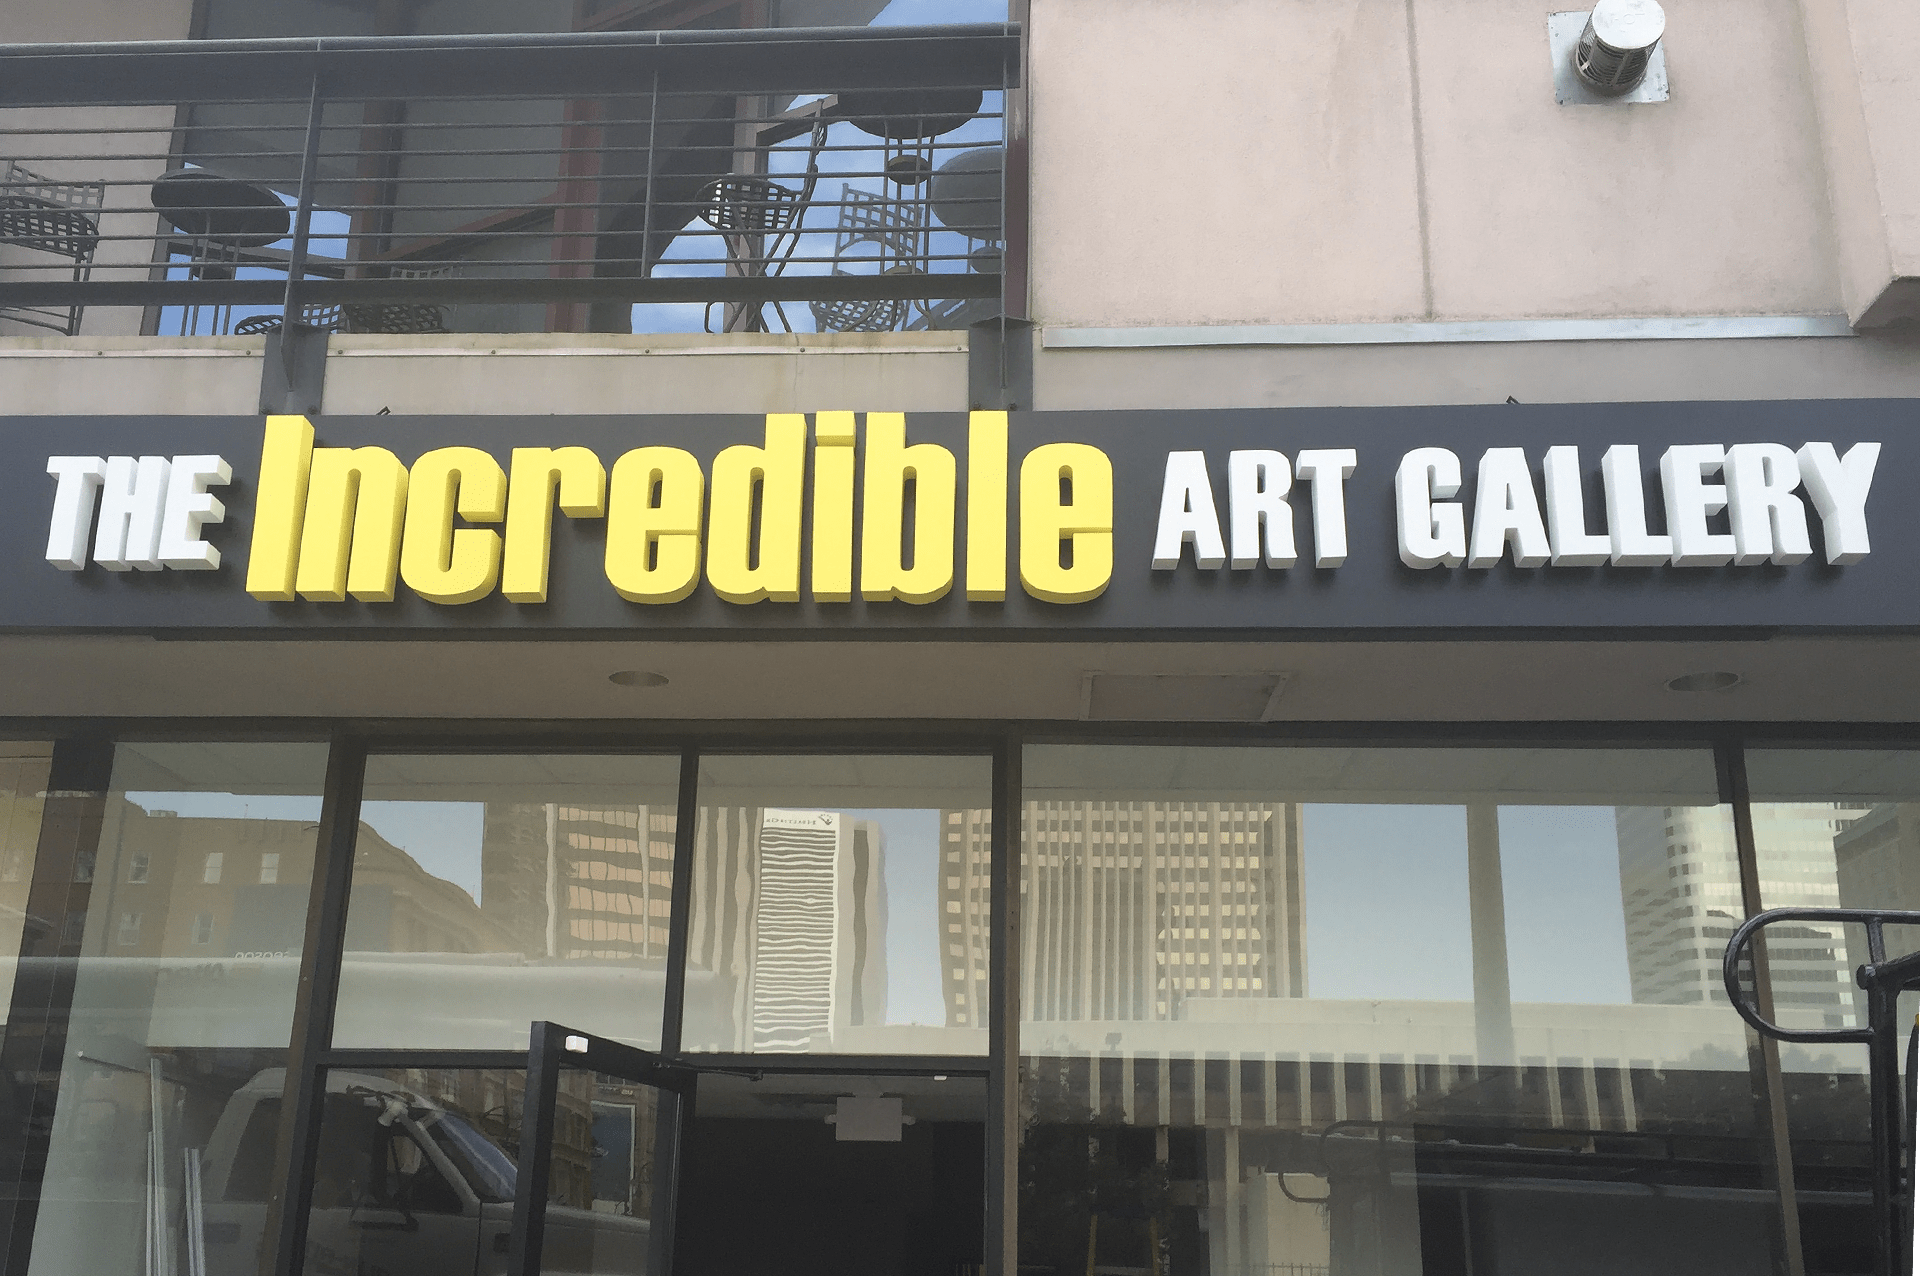 The Incredible Art Gallery channel letter sign